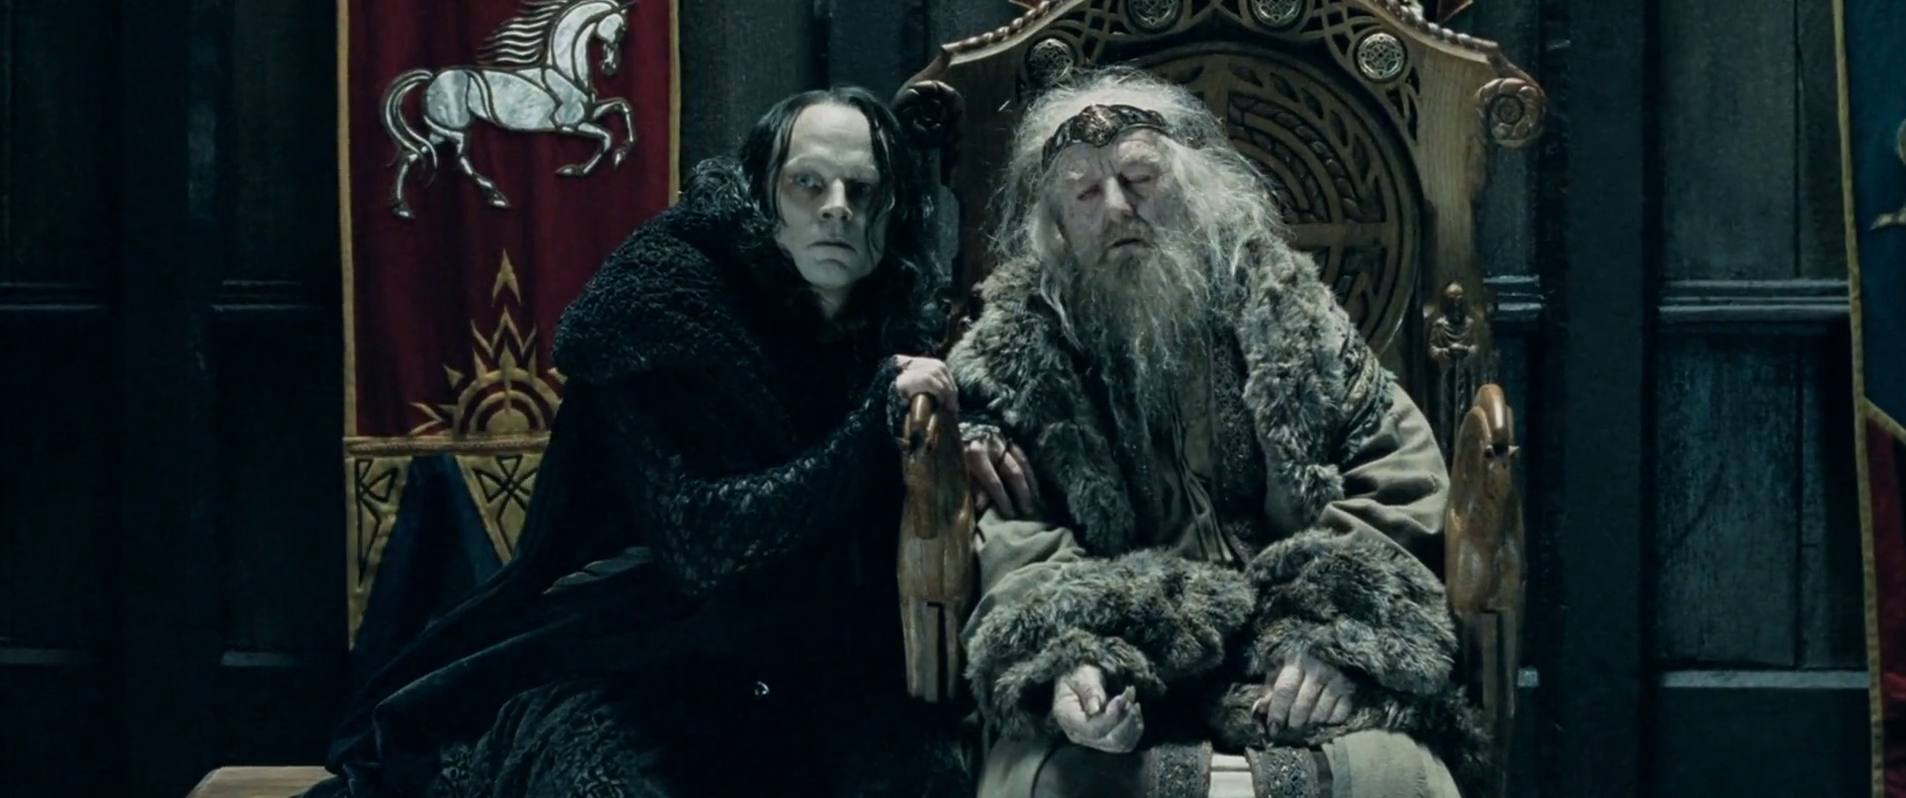 King Theoden and Grima Wormtongue